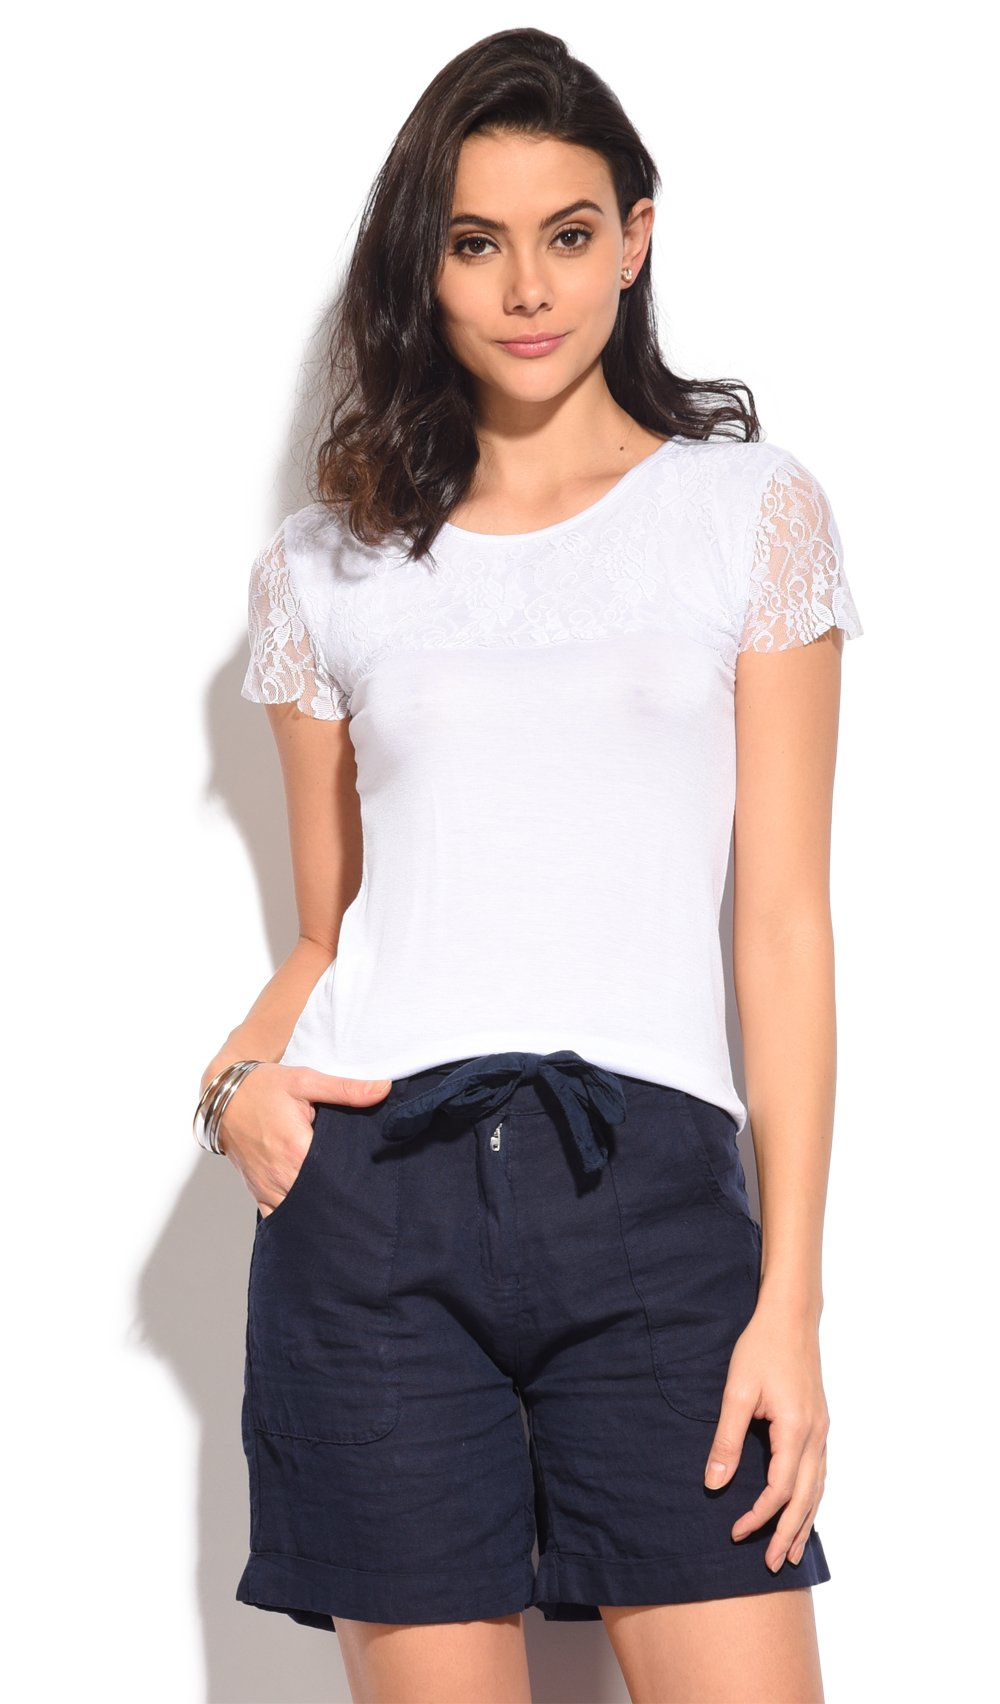 TOP WITH SHOULDERS LACE INSERT